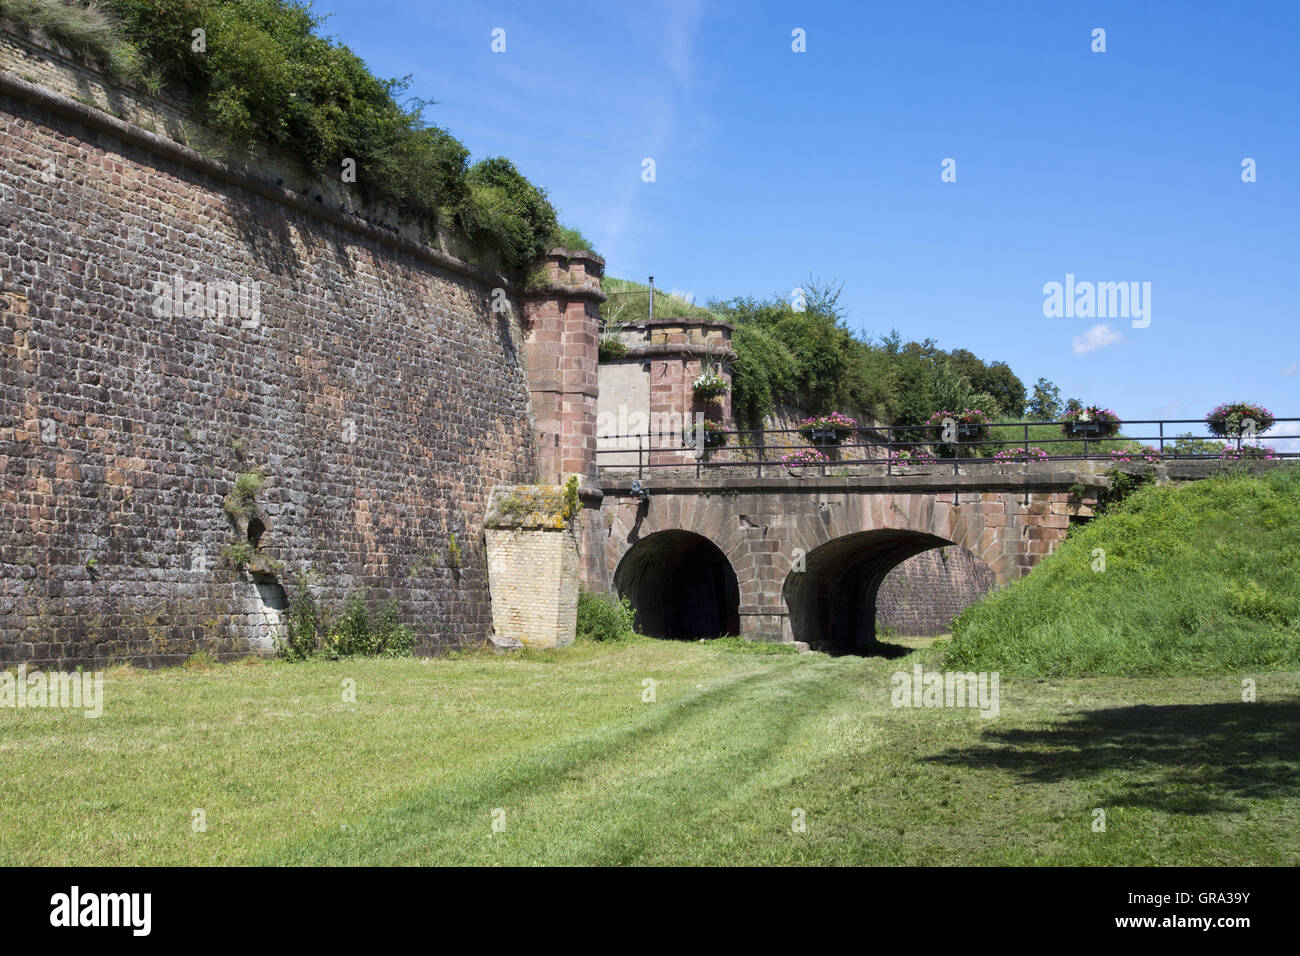 Porte De Bale, Fortifications Of Vauban, Unesco World Heritage Site, Neuf-Brisach, Alsace, France, Europe - Stock Image